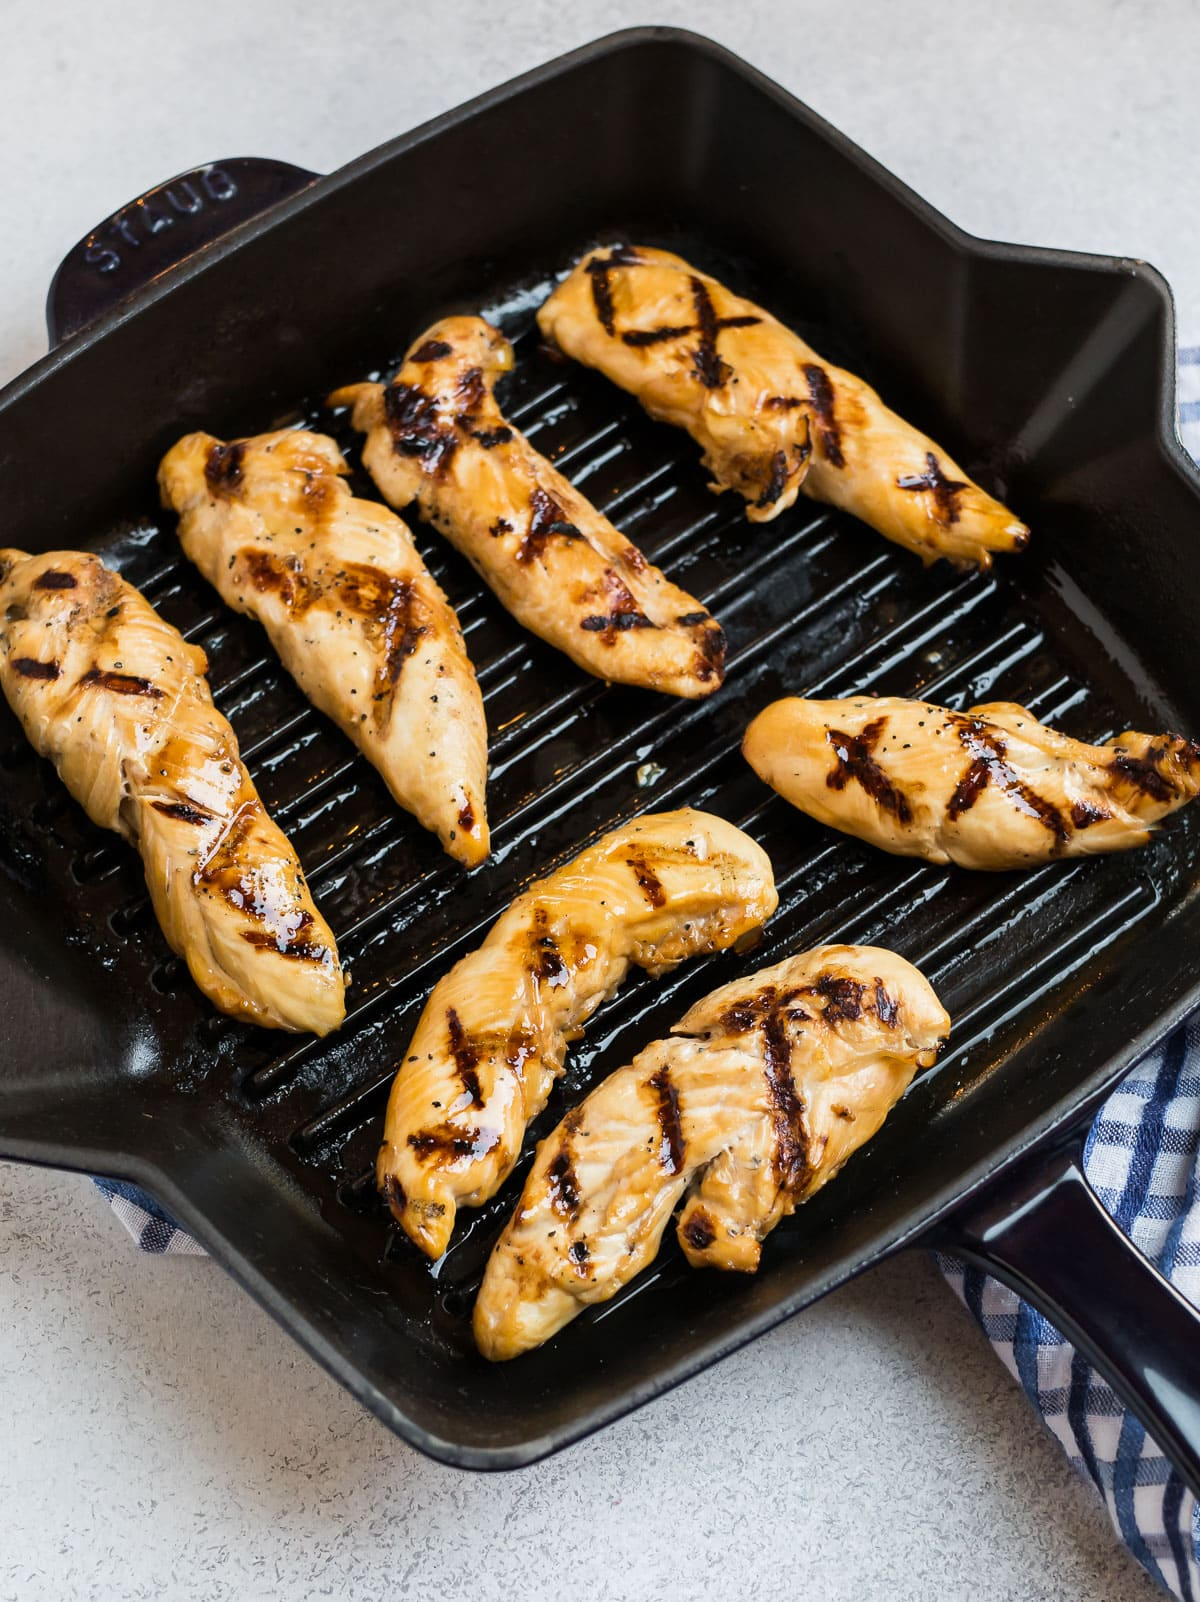 Grilled chicken tenders on a grill pan